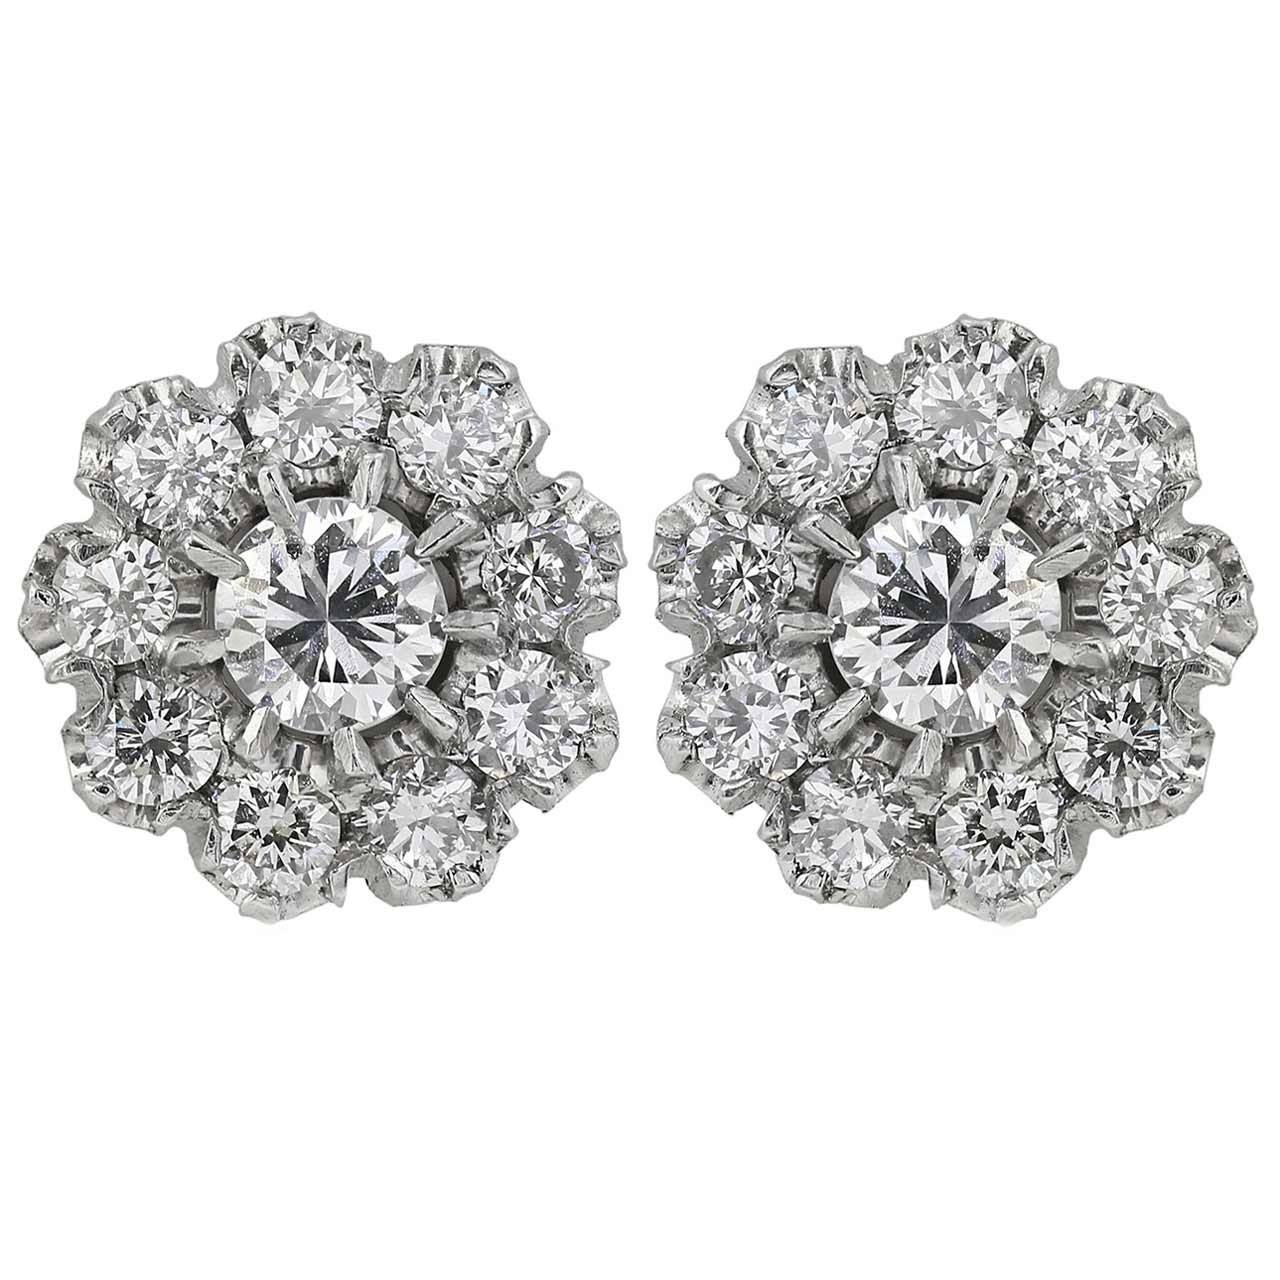 1.40 Carat Diamond Platinum Cluster Earrings 1